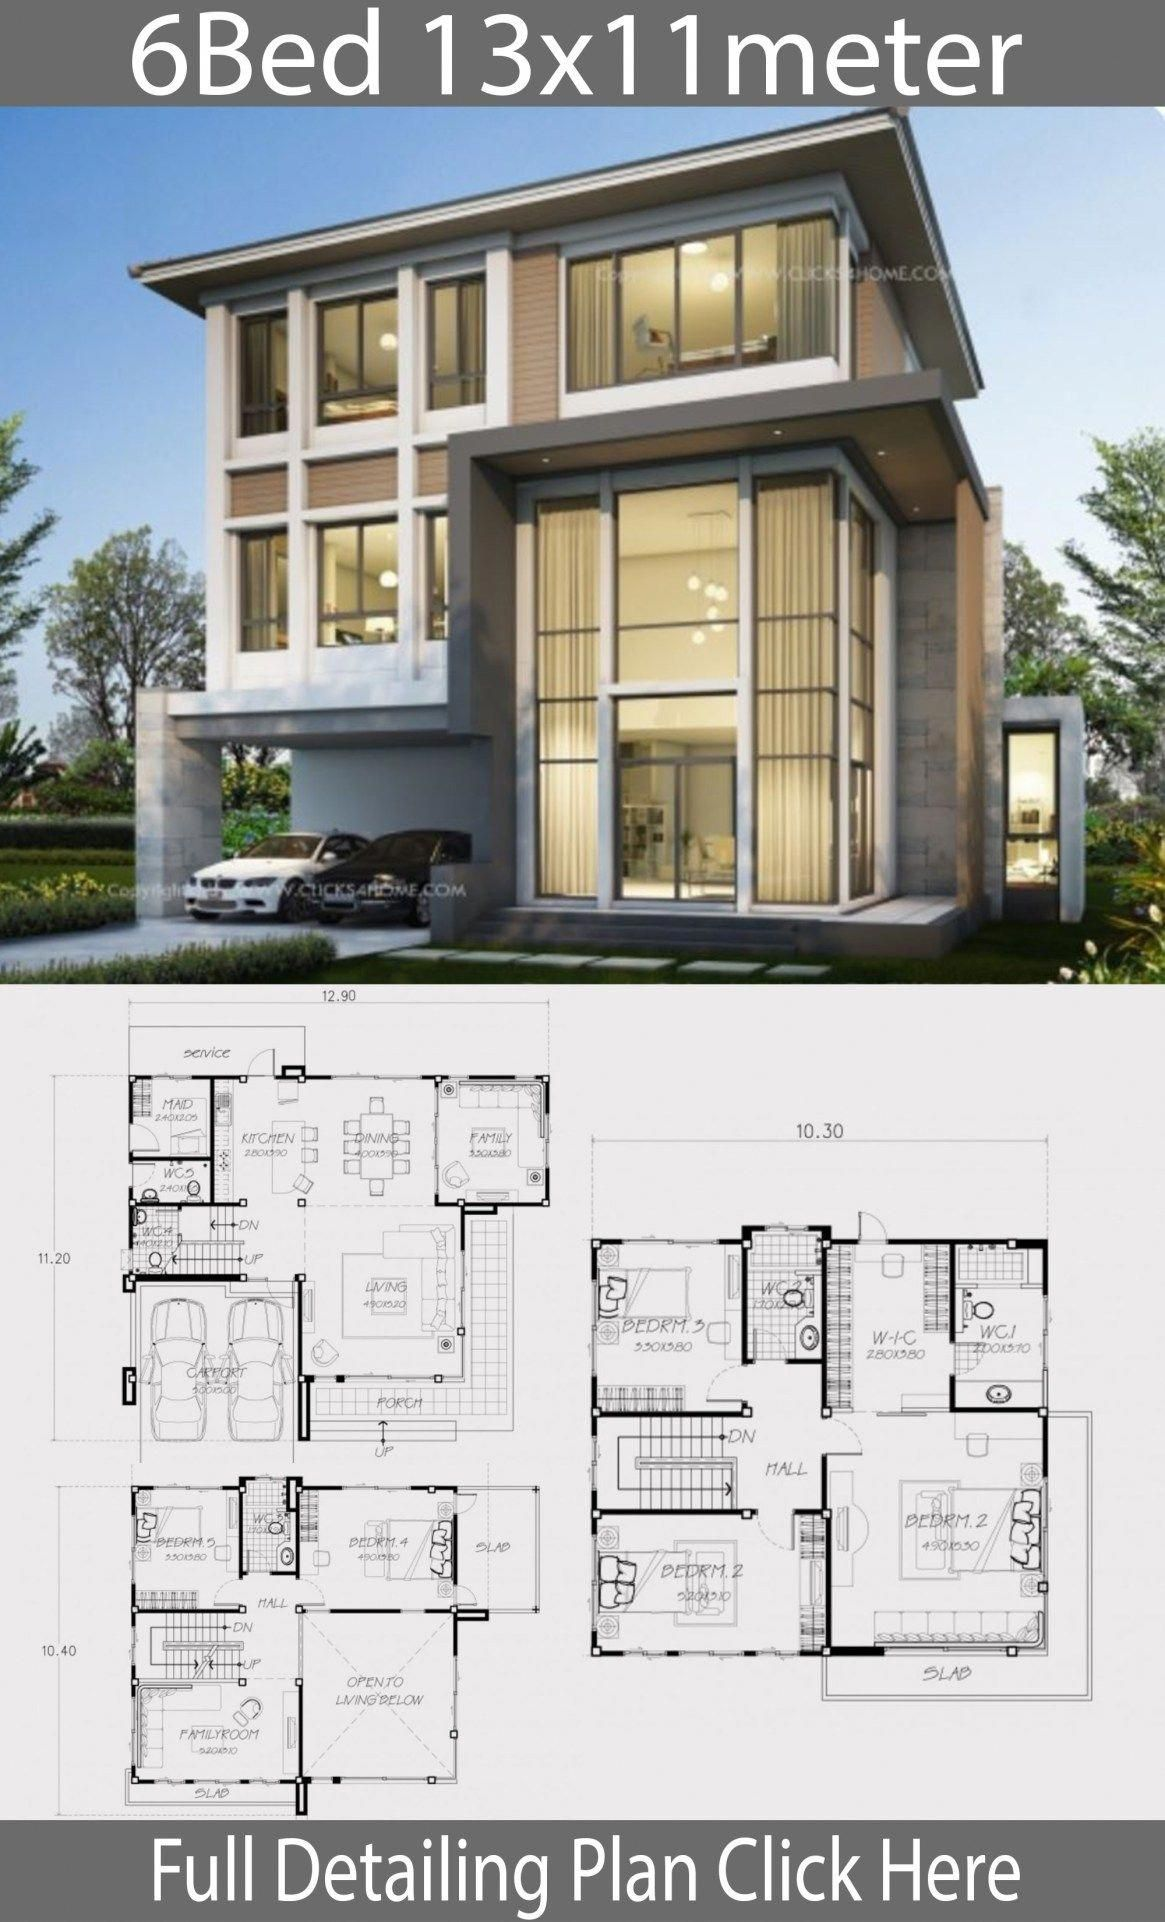 Home Design Plan 13x11m With 6 Bedrooms Home Design With Plansearch Tophomeinteriors Modern House Plans Home Design Plan Luxury House Plans